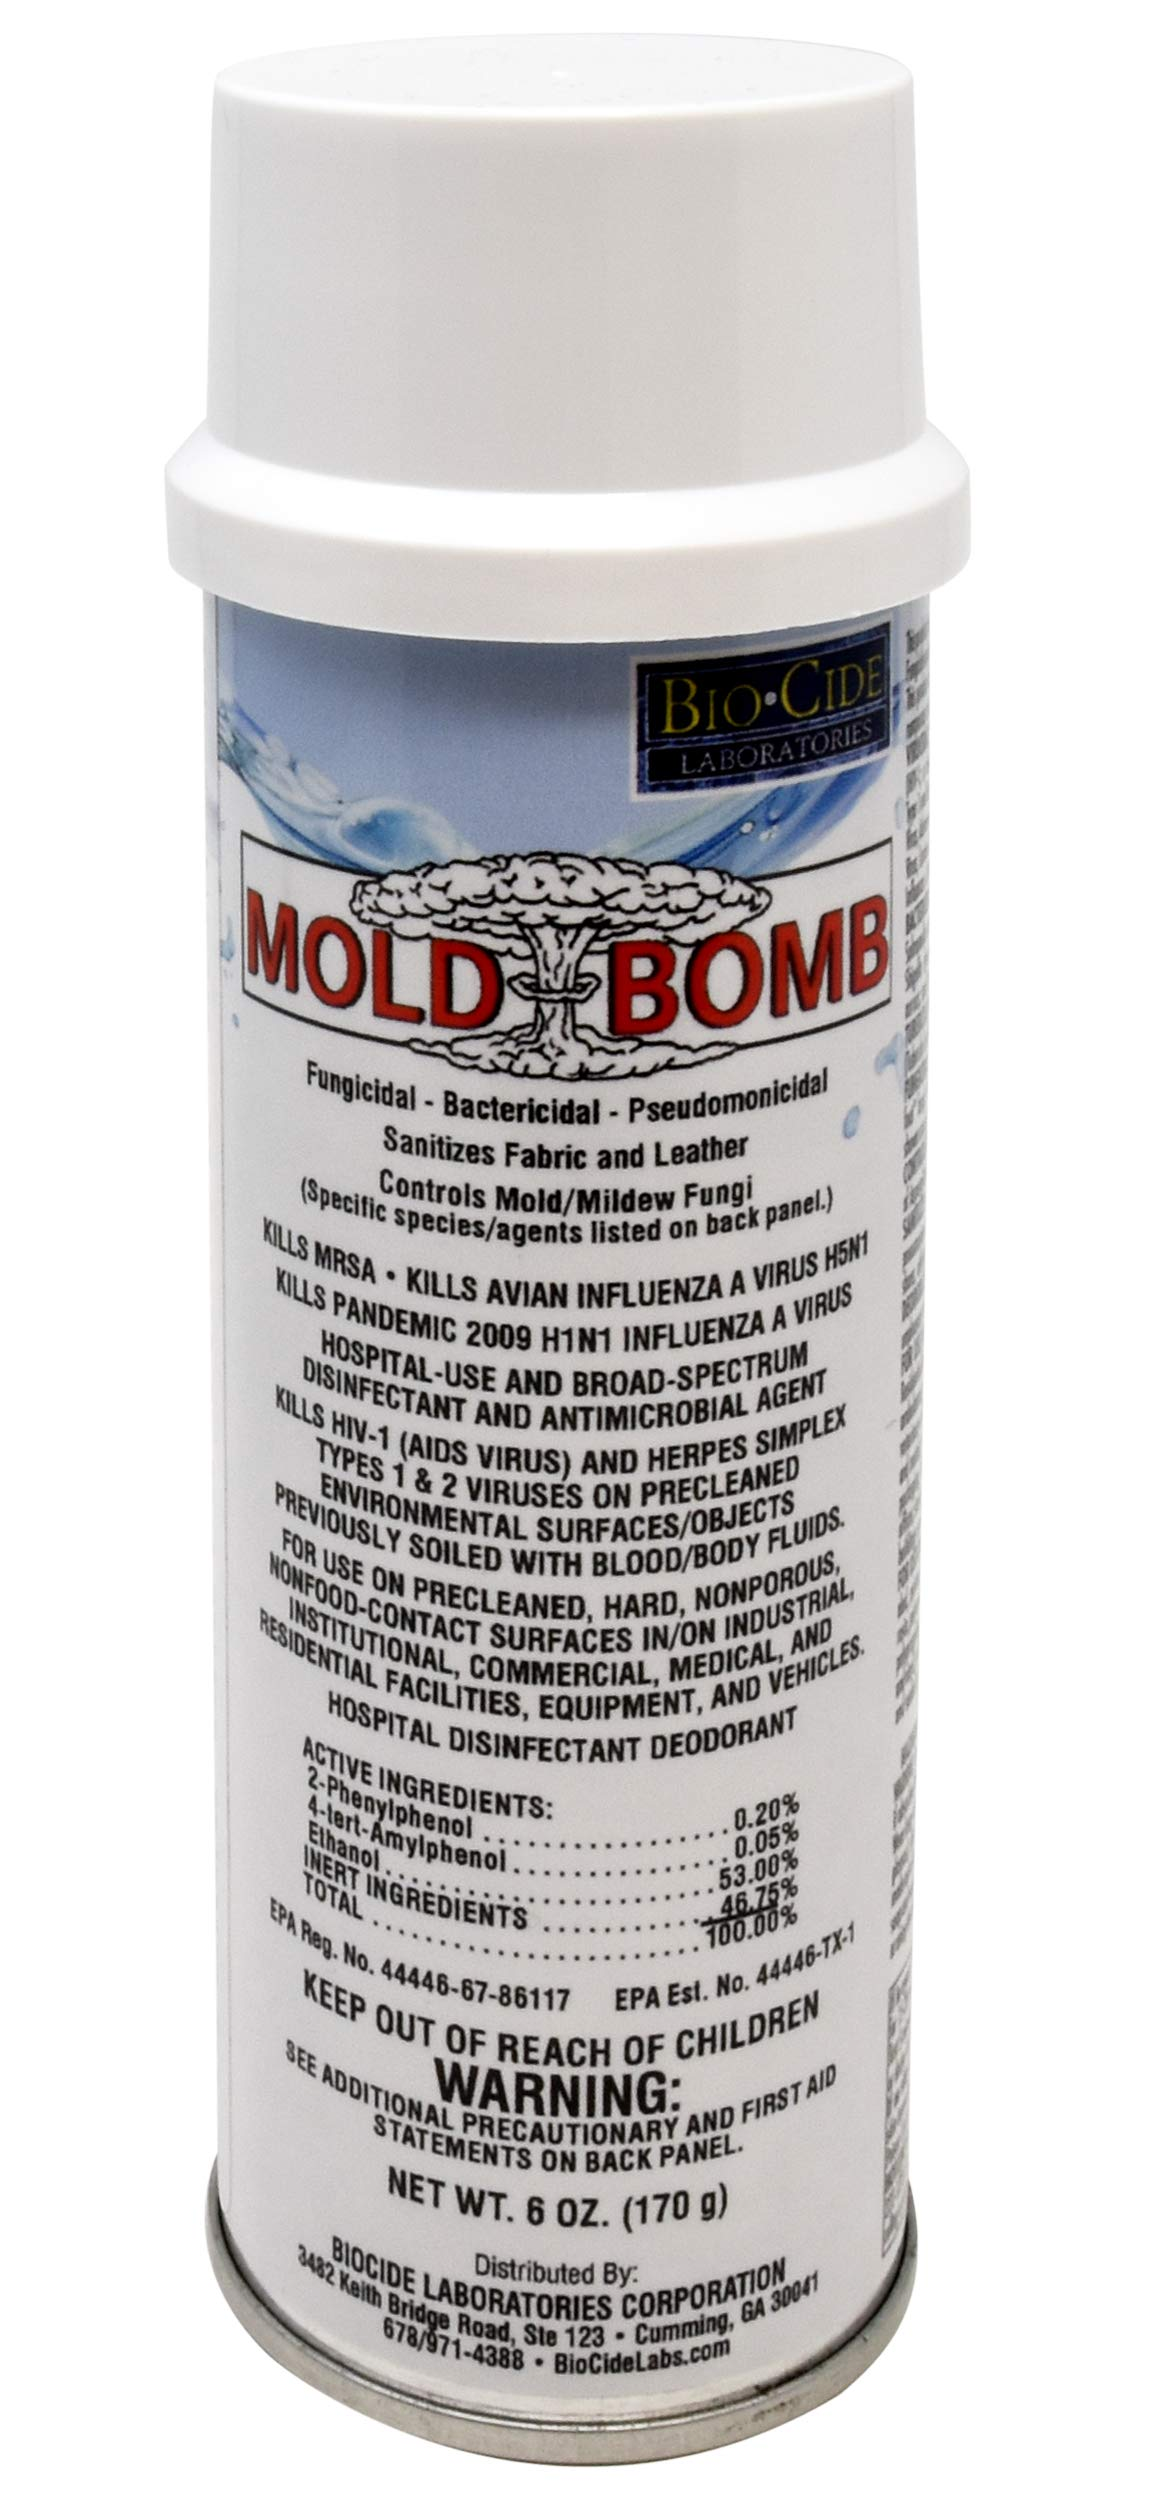 BioCide Mold Bomb Fogger - Mold Killer & Remover - Kill, Clean and Prevent Mold, Mildew, Germs, Viruses, Fungi and Bacterias, DIY Mold Remediation by Biocide Laboratories